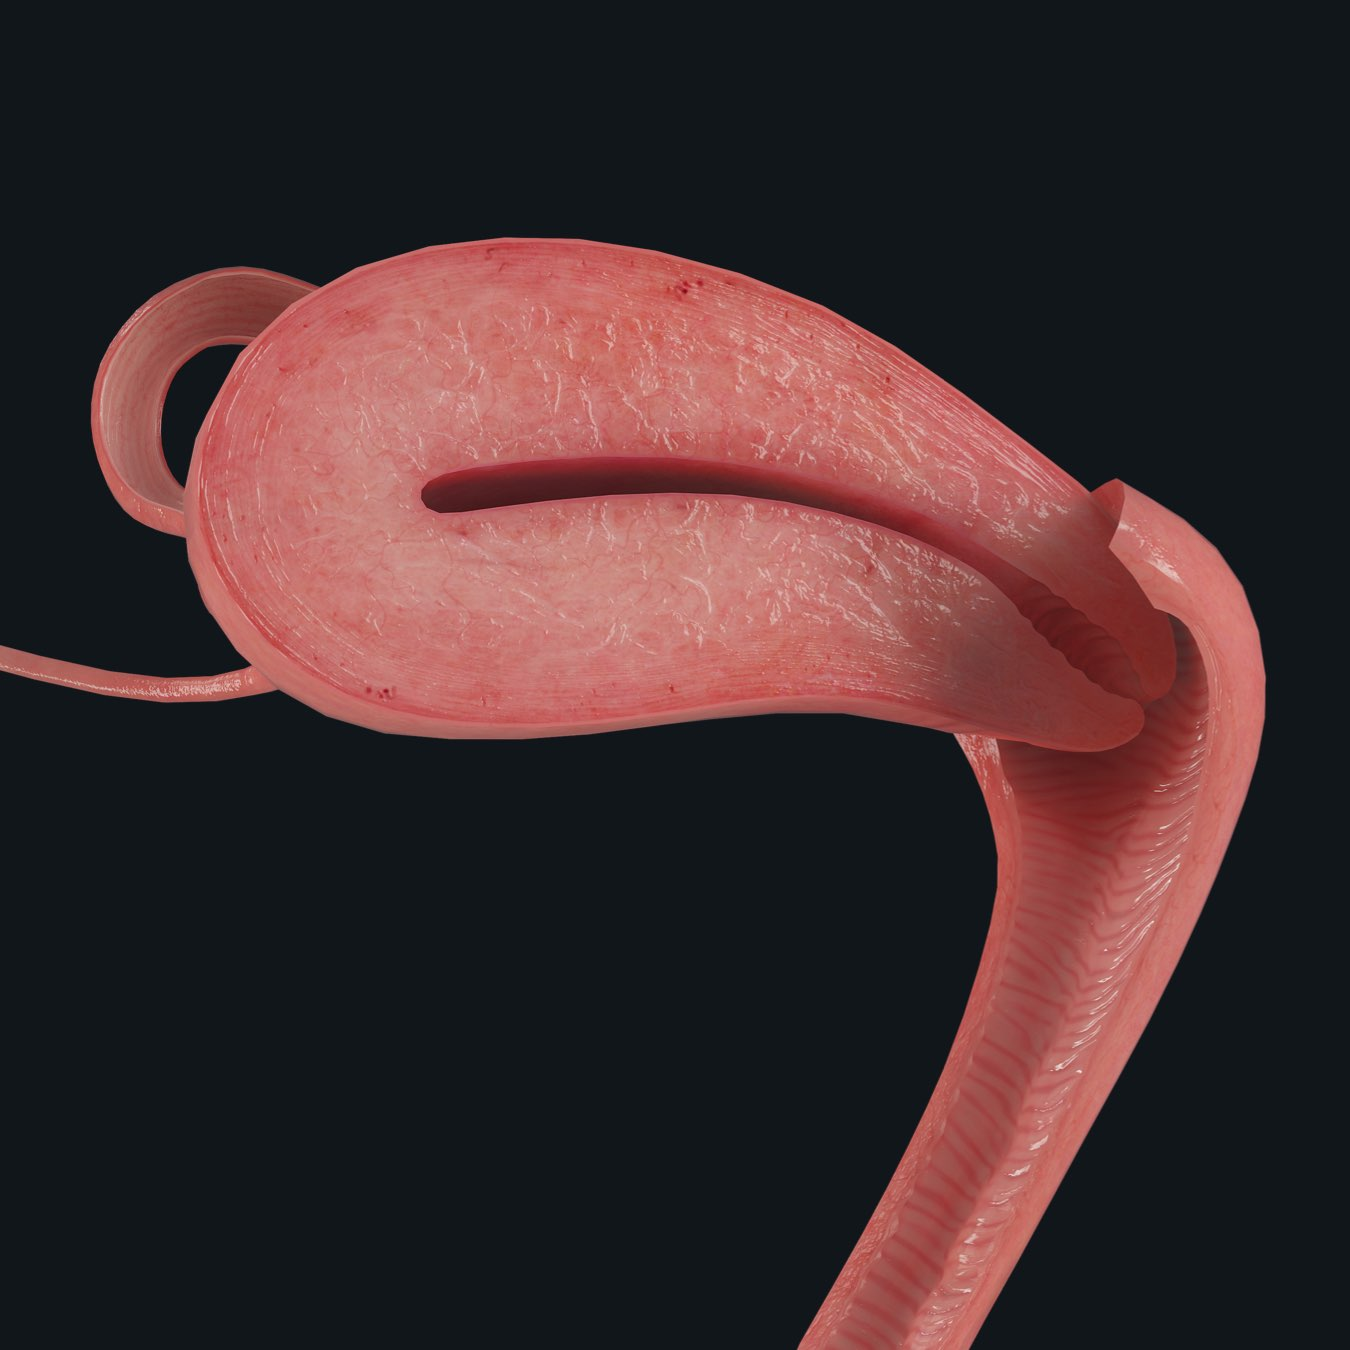 The uterus, part of the female pelvic prosection in Complete Anatomy